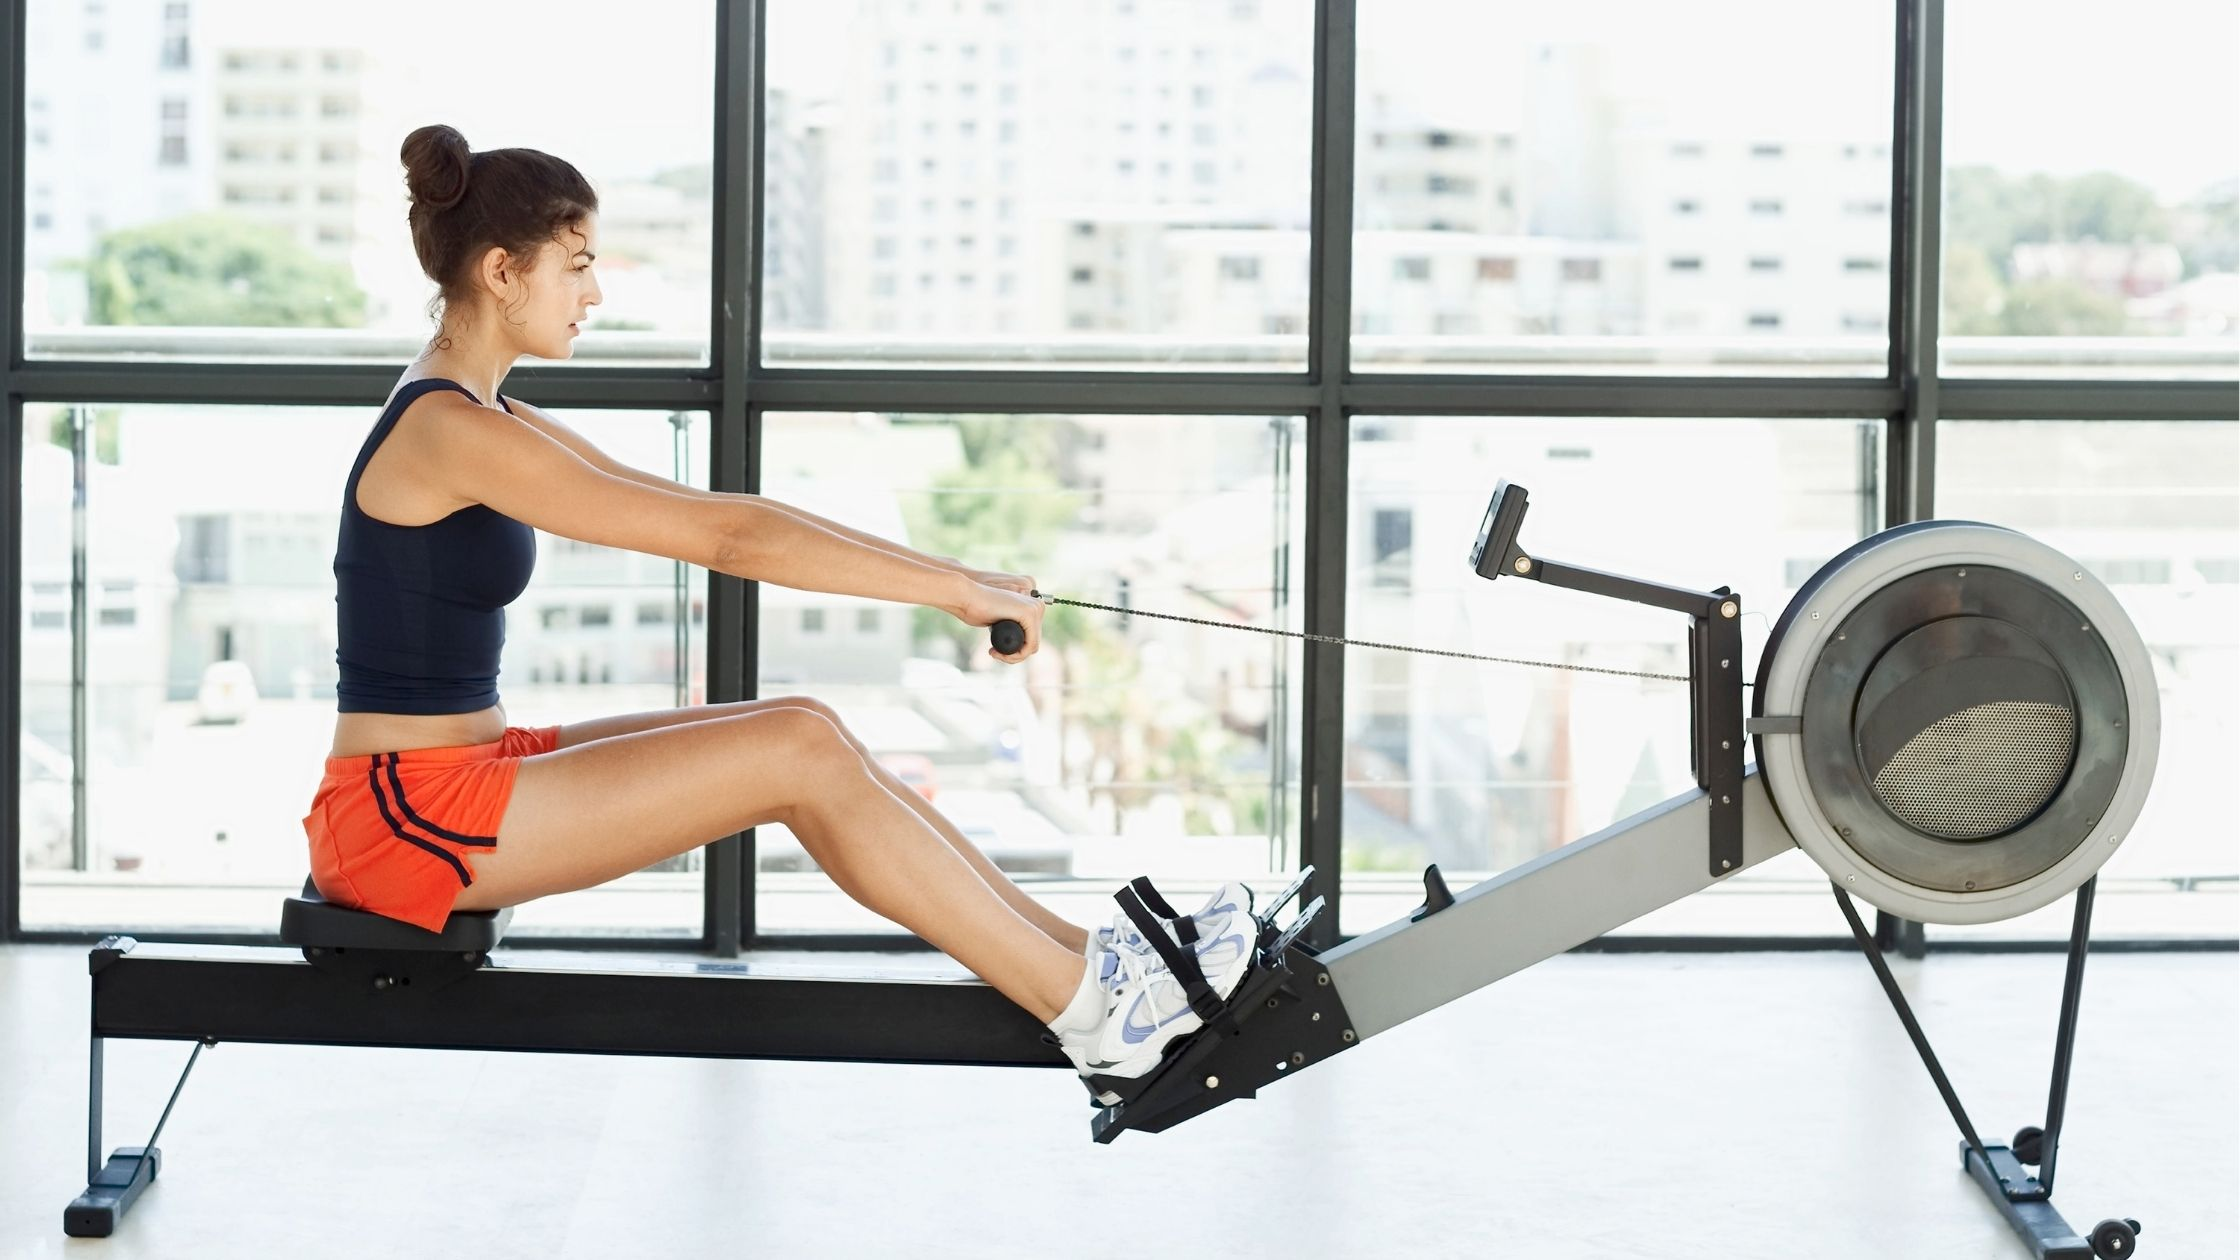 Types of Rowing Machines: Magnetic Resistance Rowing Machine